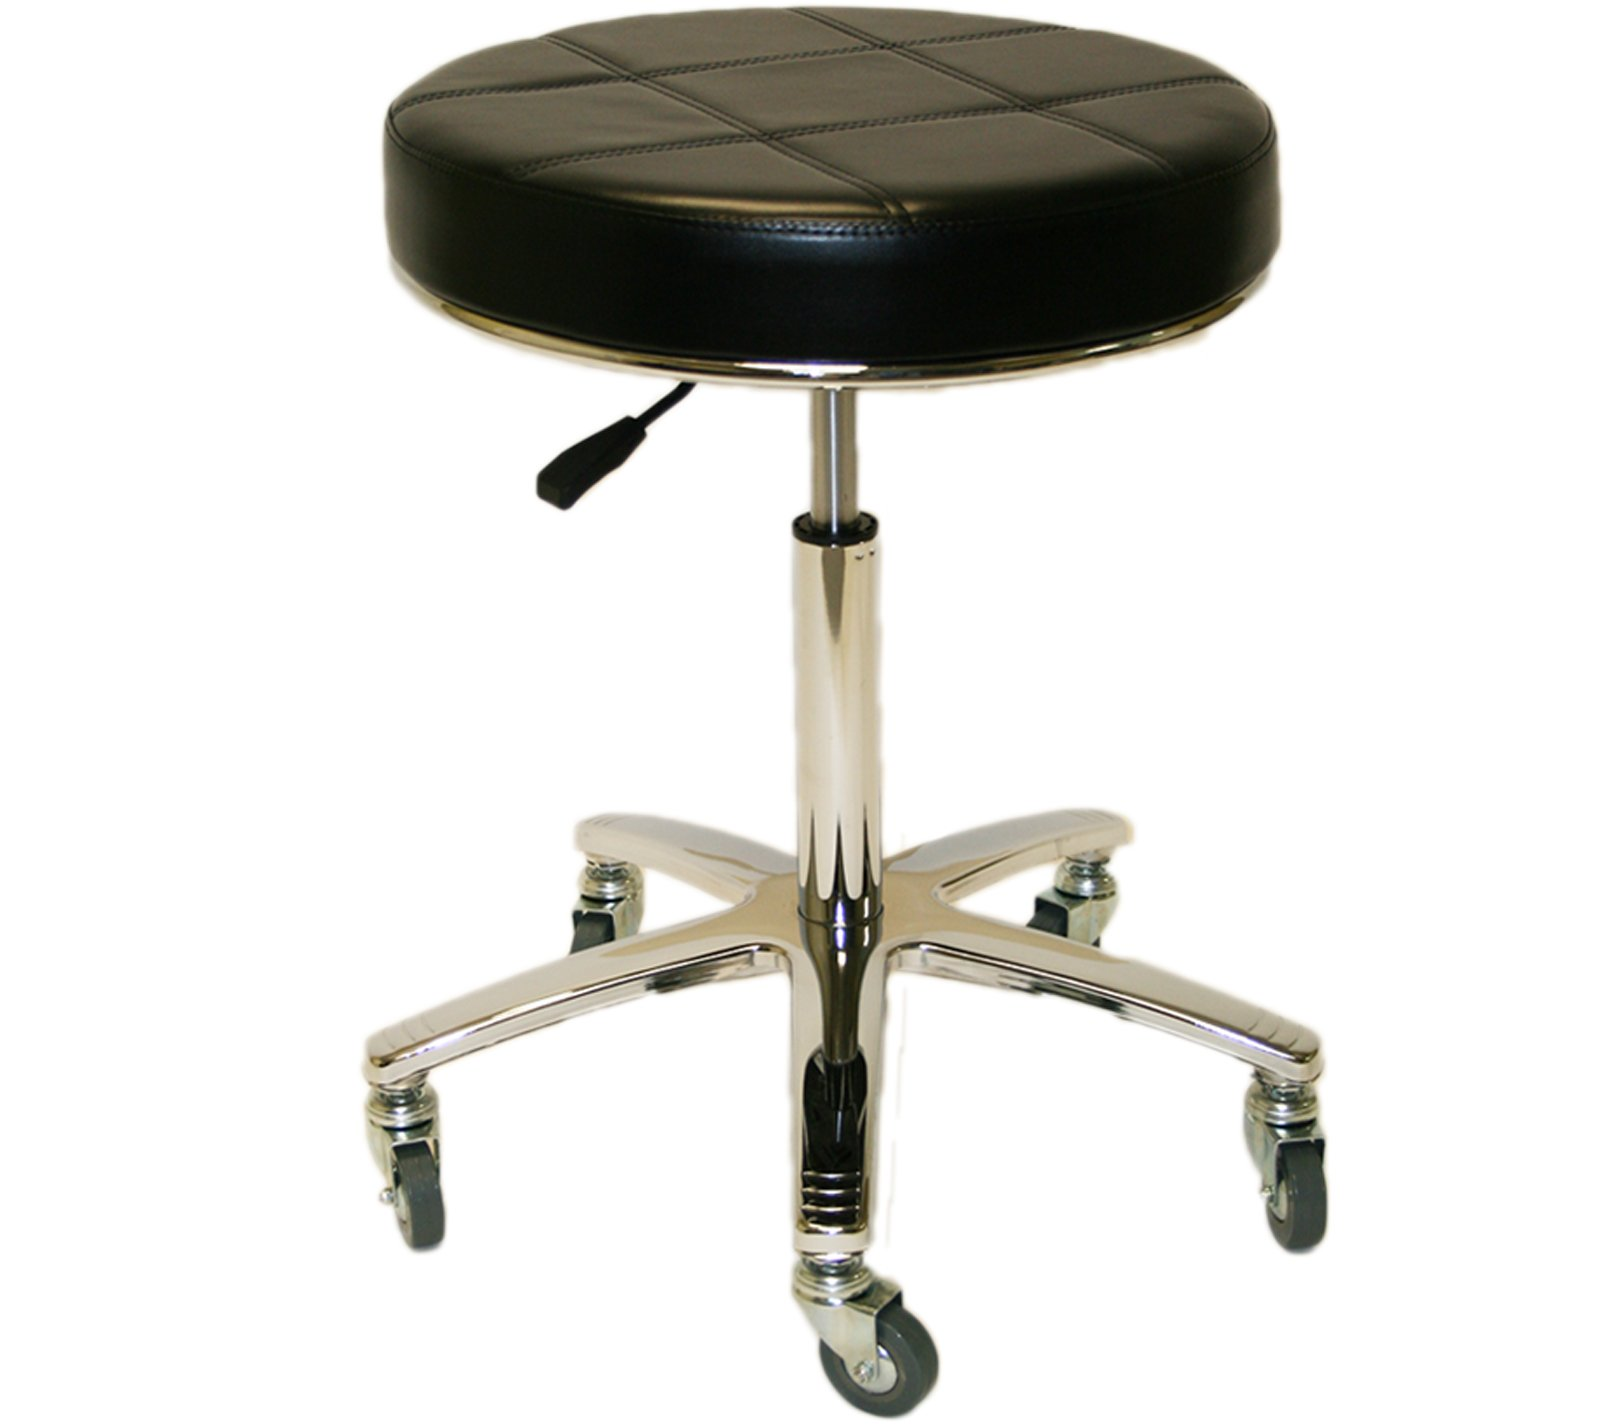 LCL Beauty Tall Super Heavy Duty Extra Large Deluxe Air-Lift Technician Stool with Welded Steel Base - 400Lb Capacity! by LCL Beauty